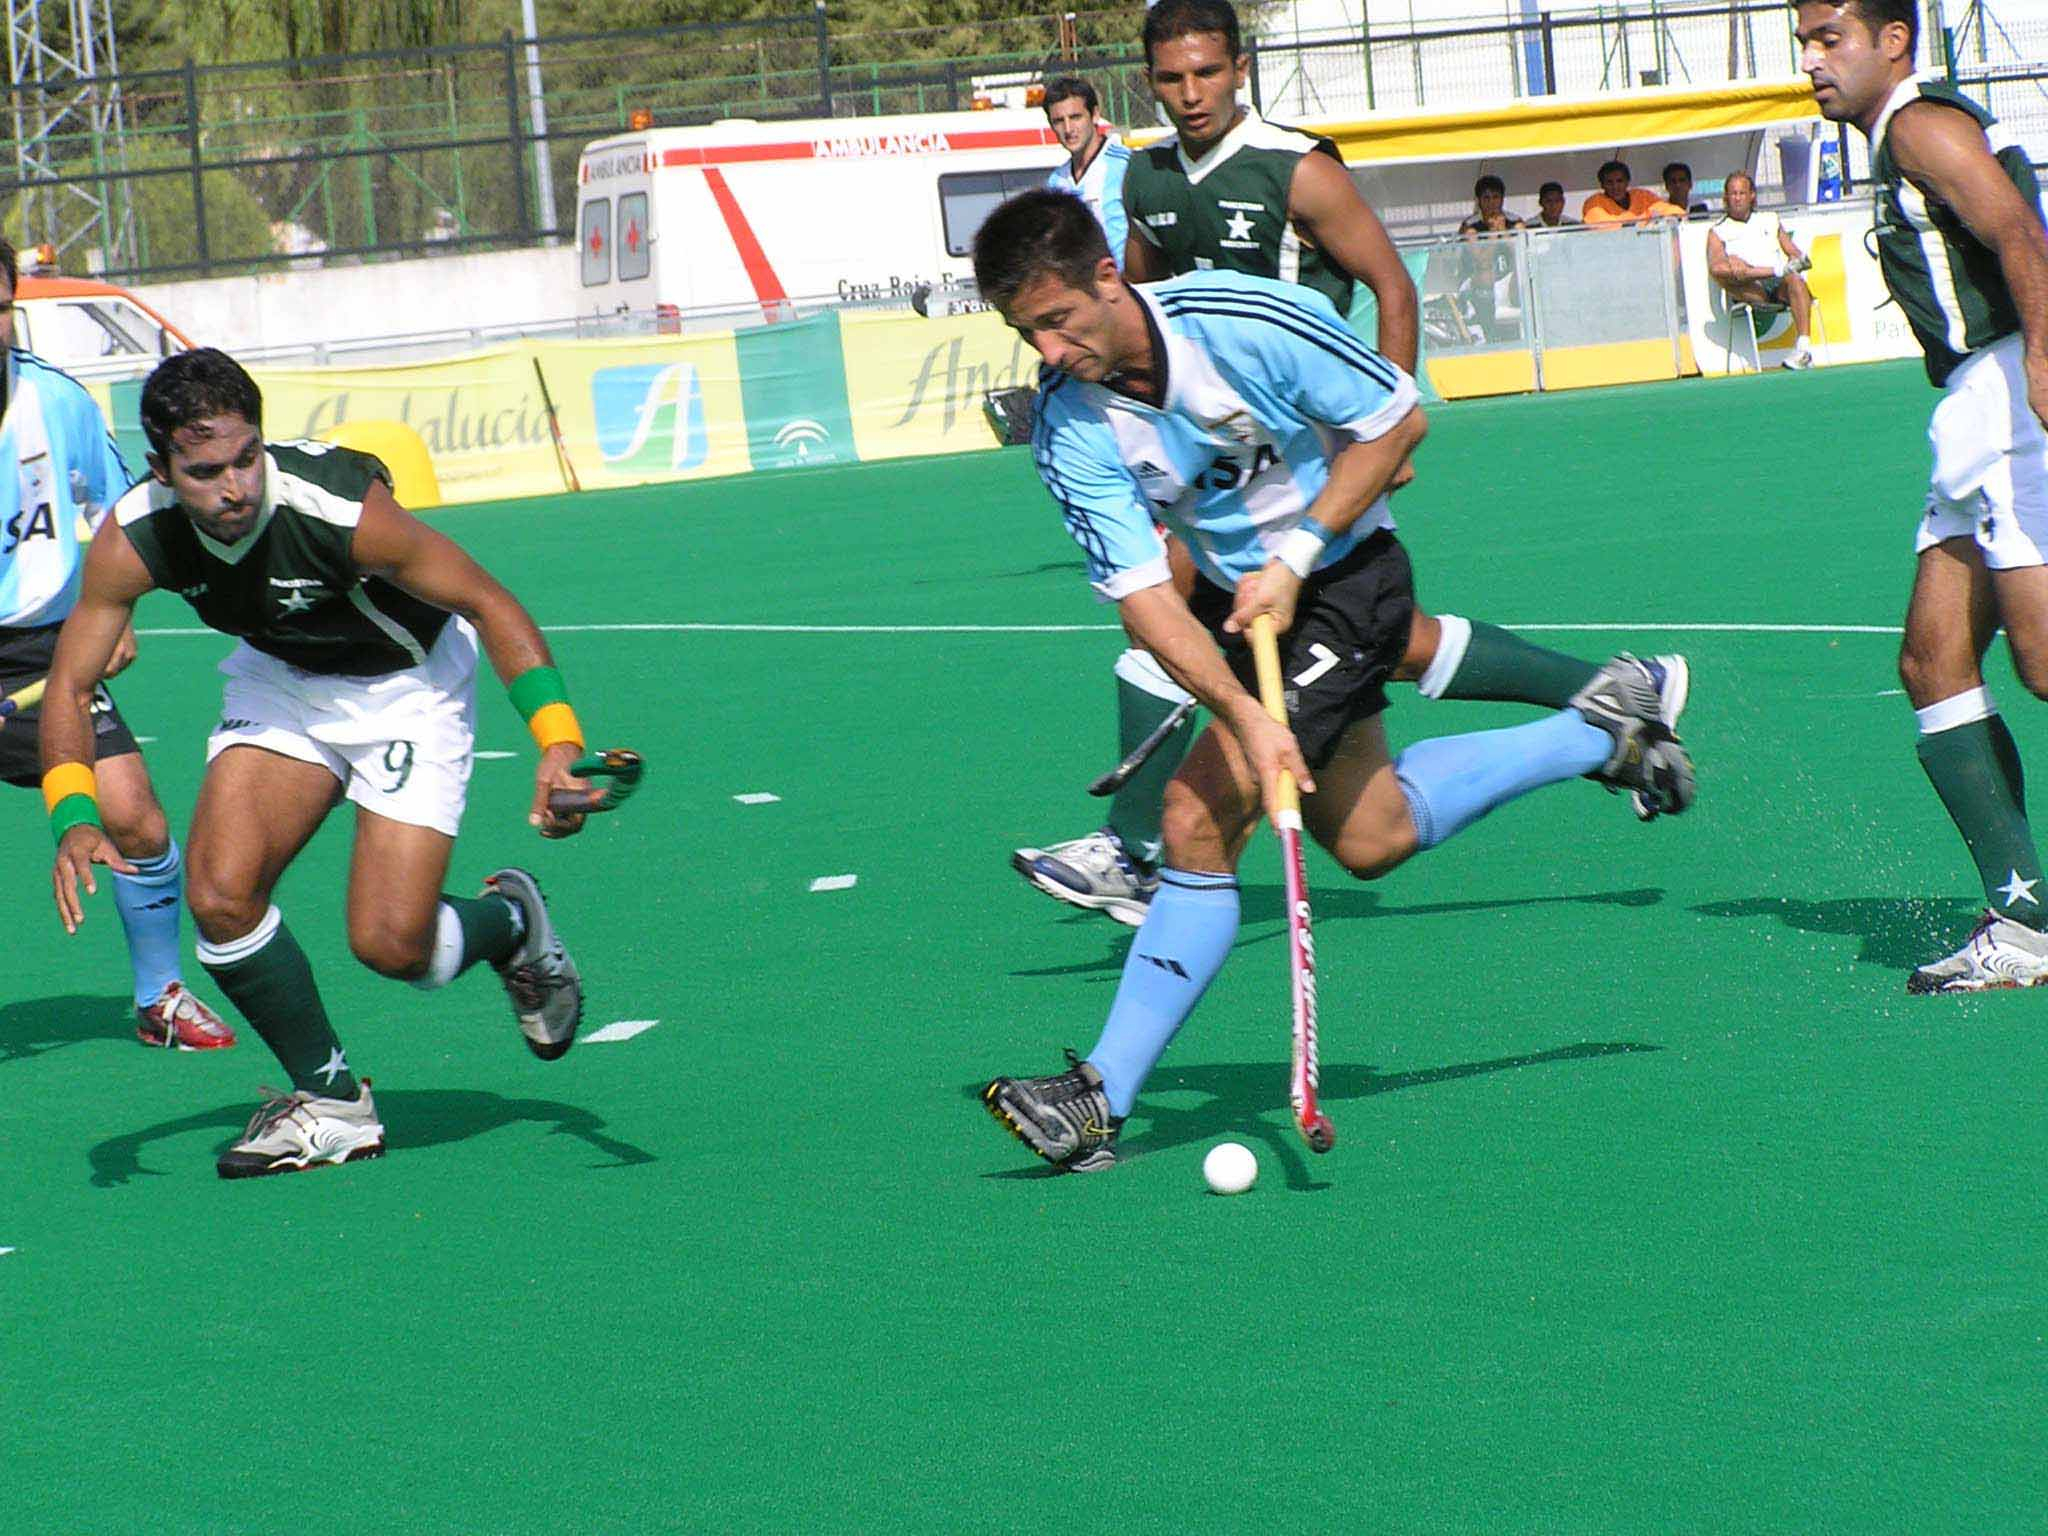 Description hockey argentina pakistan